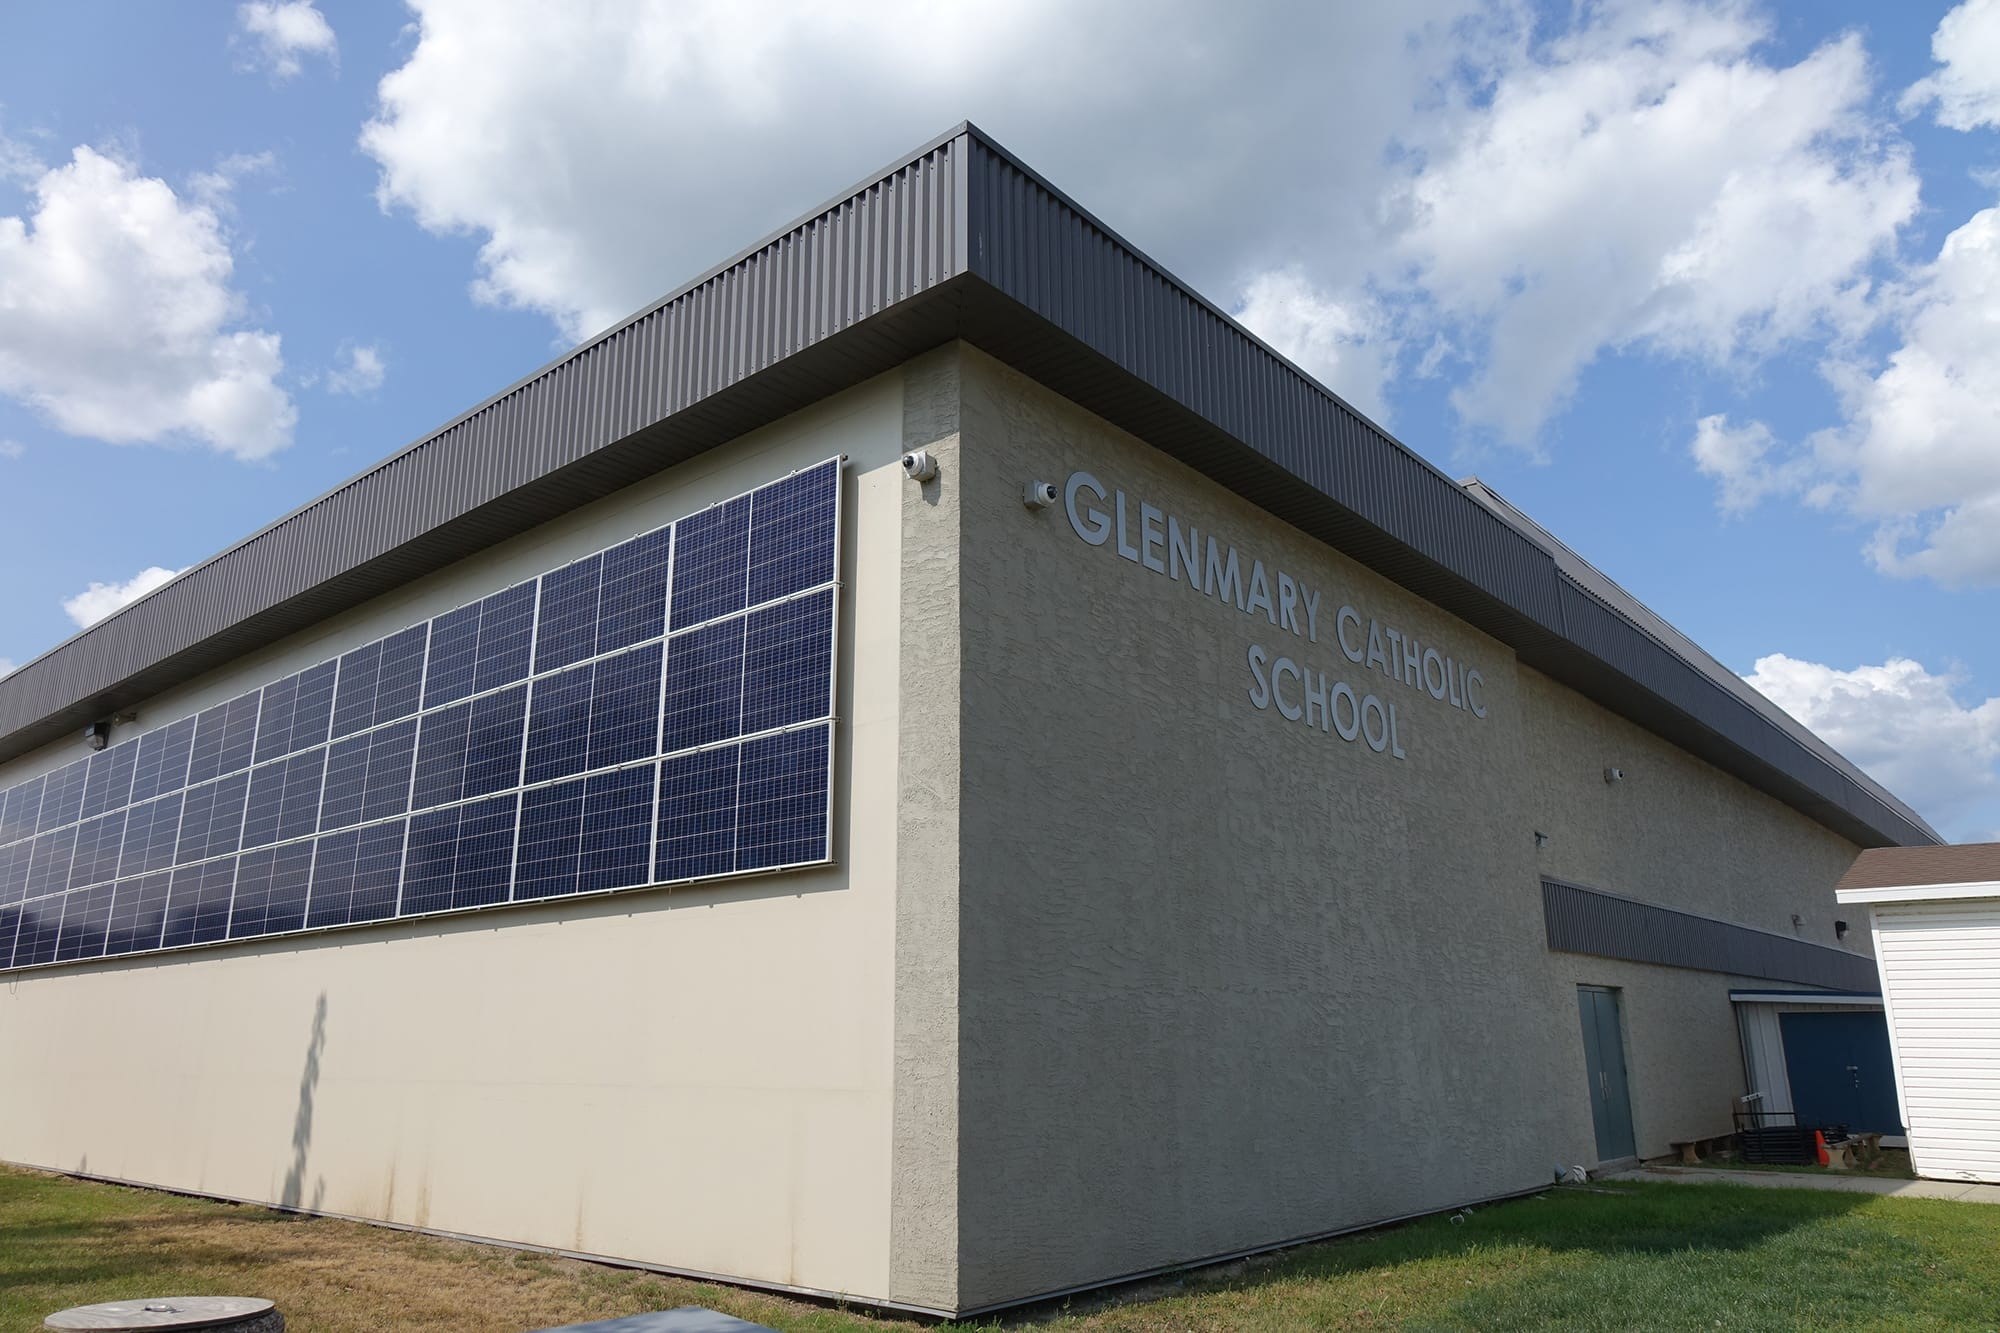 Glenmary School exterior with solar panels